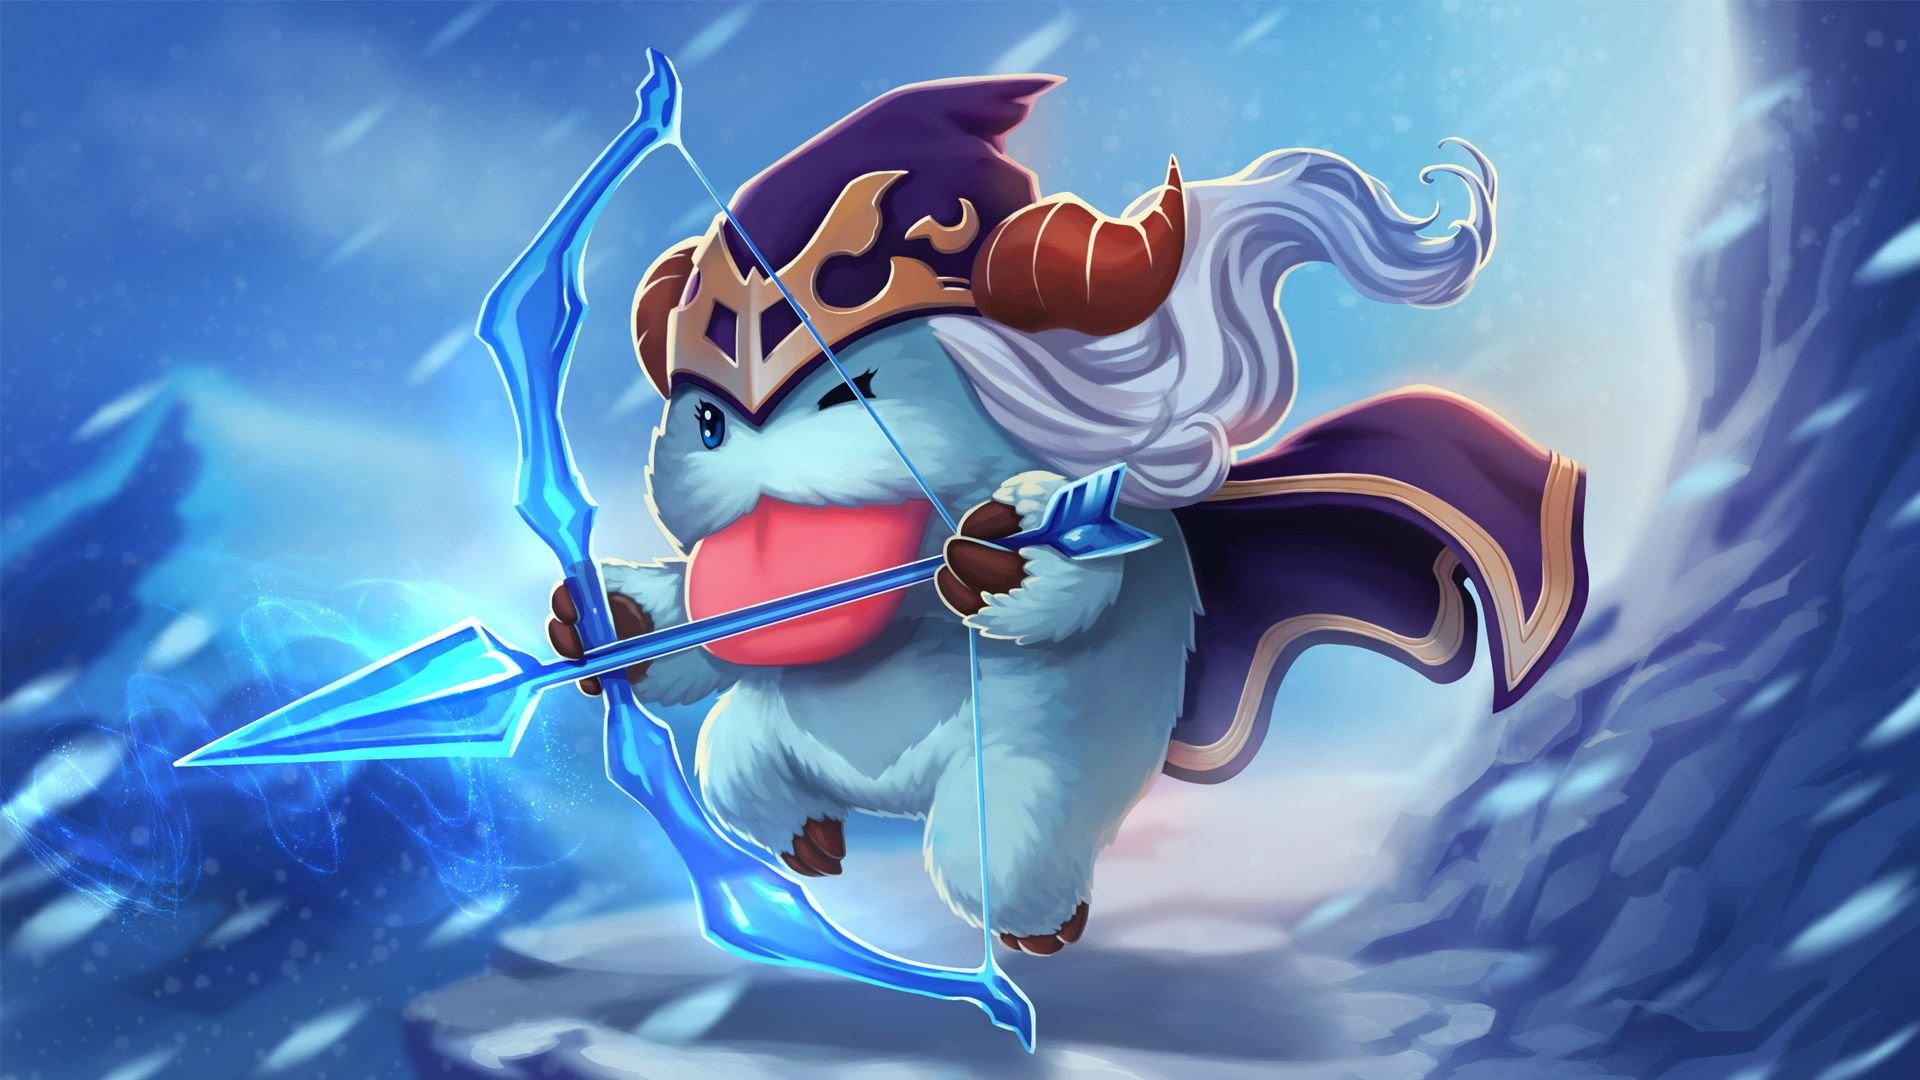 Ashe League Of Legends Wallpapers 1920x1080 Full Hd 1080p